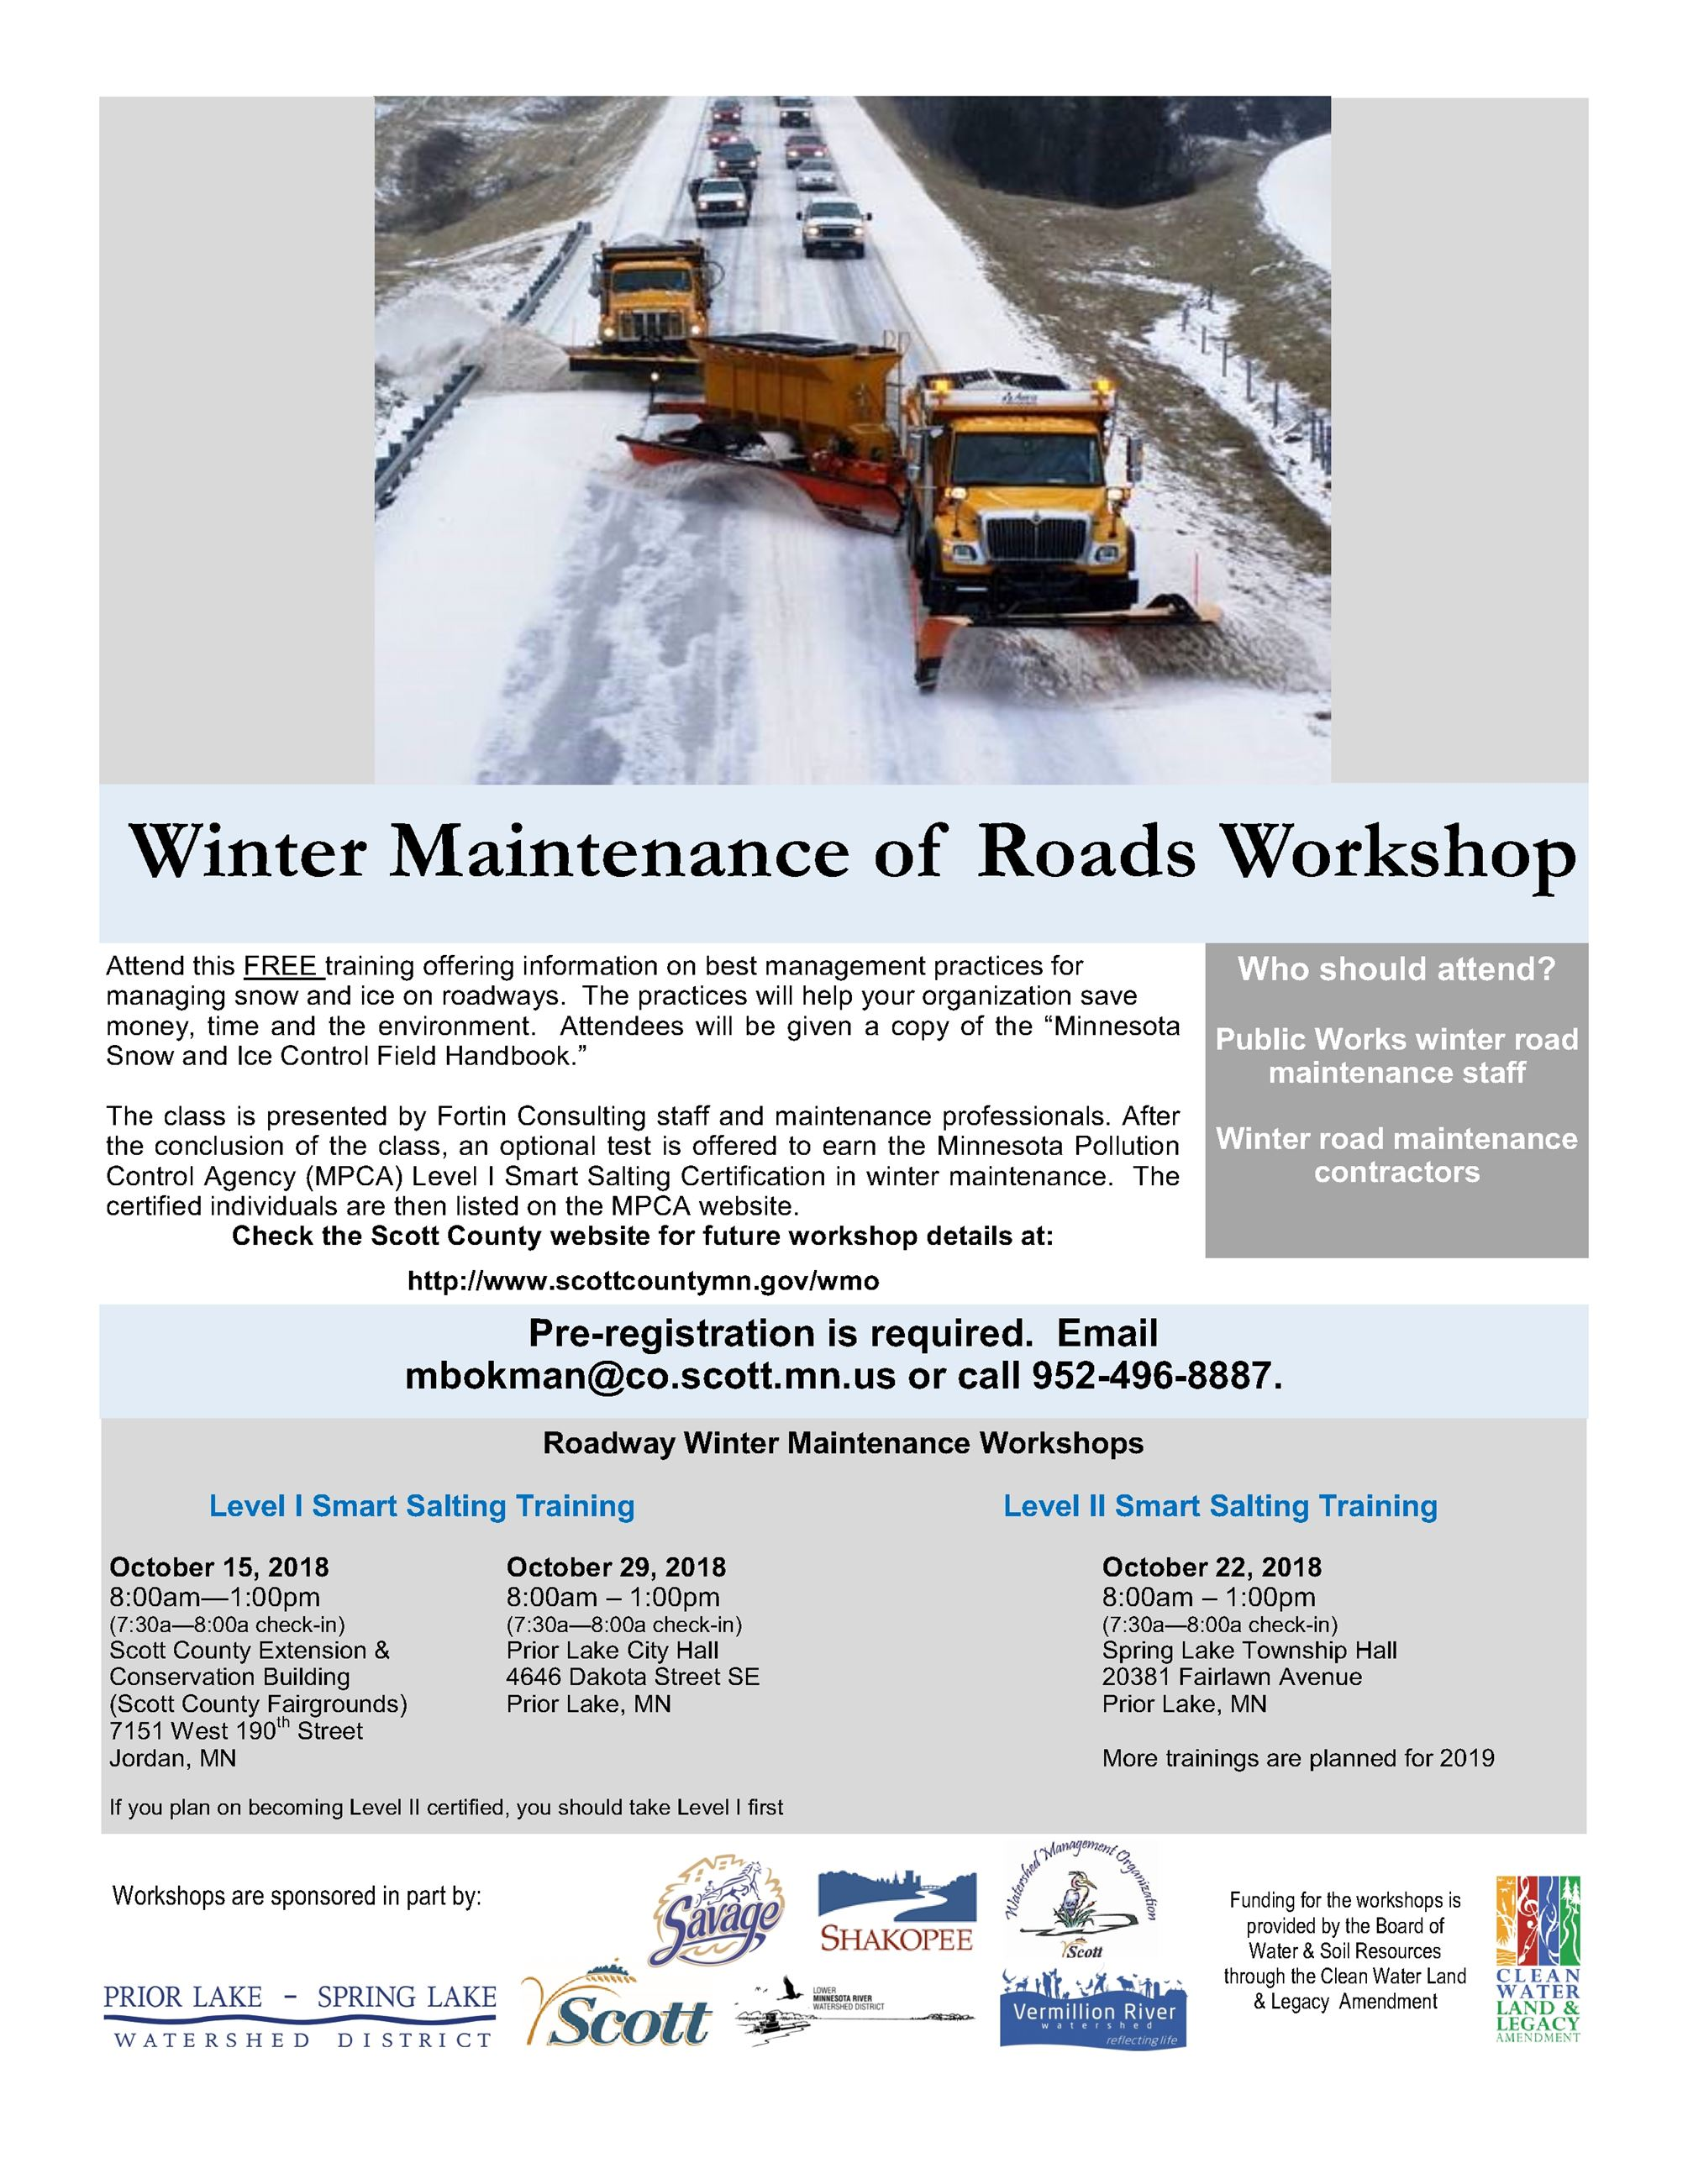 Winter Roads Flier October 2018